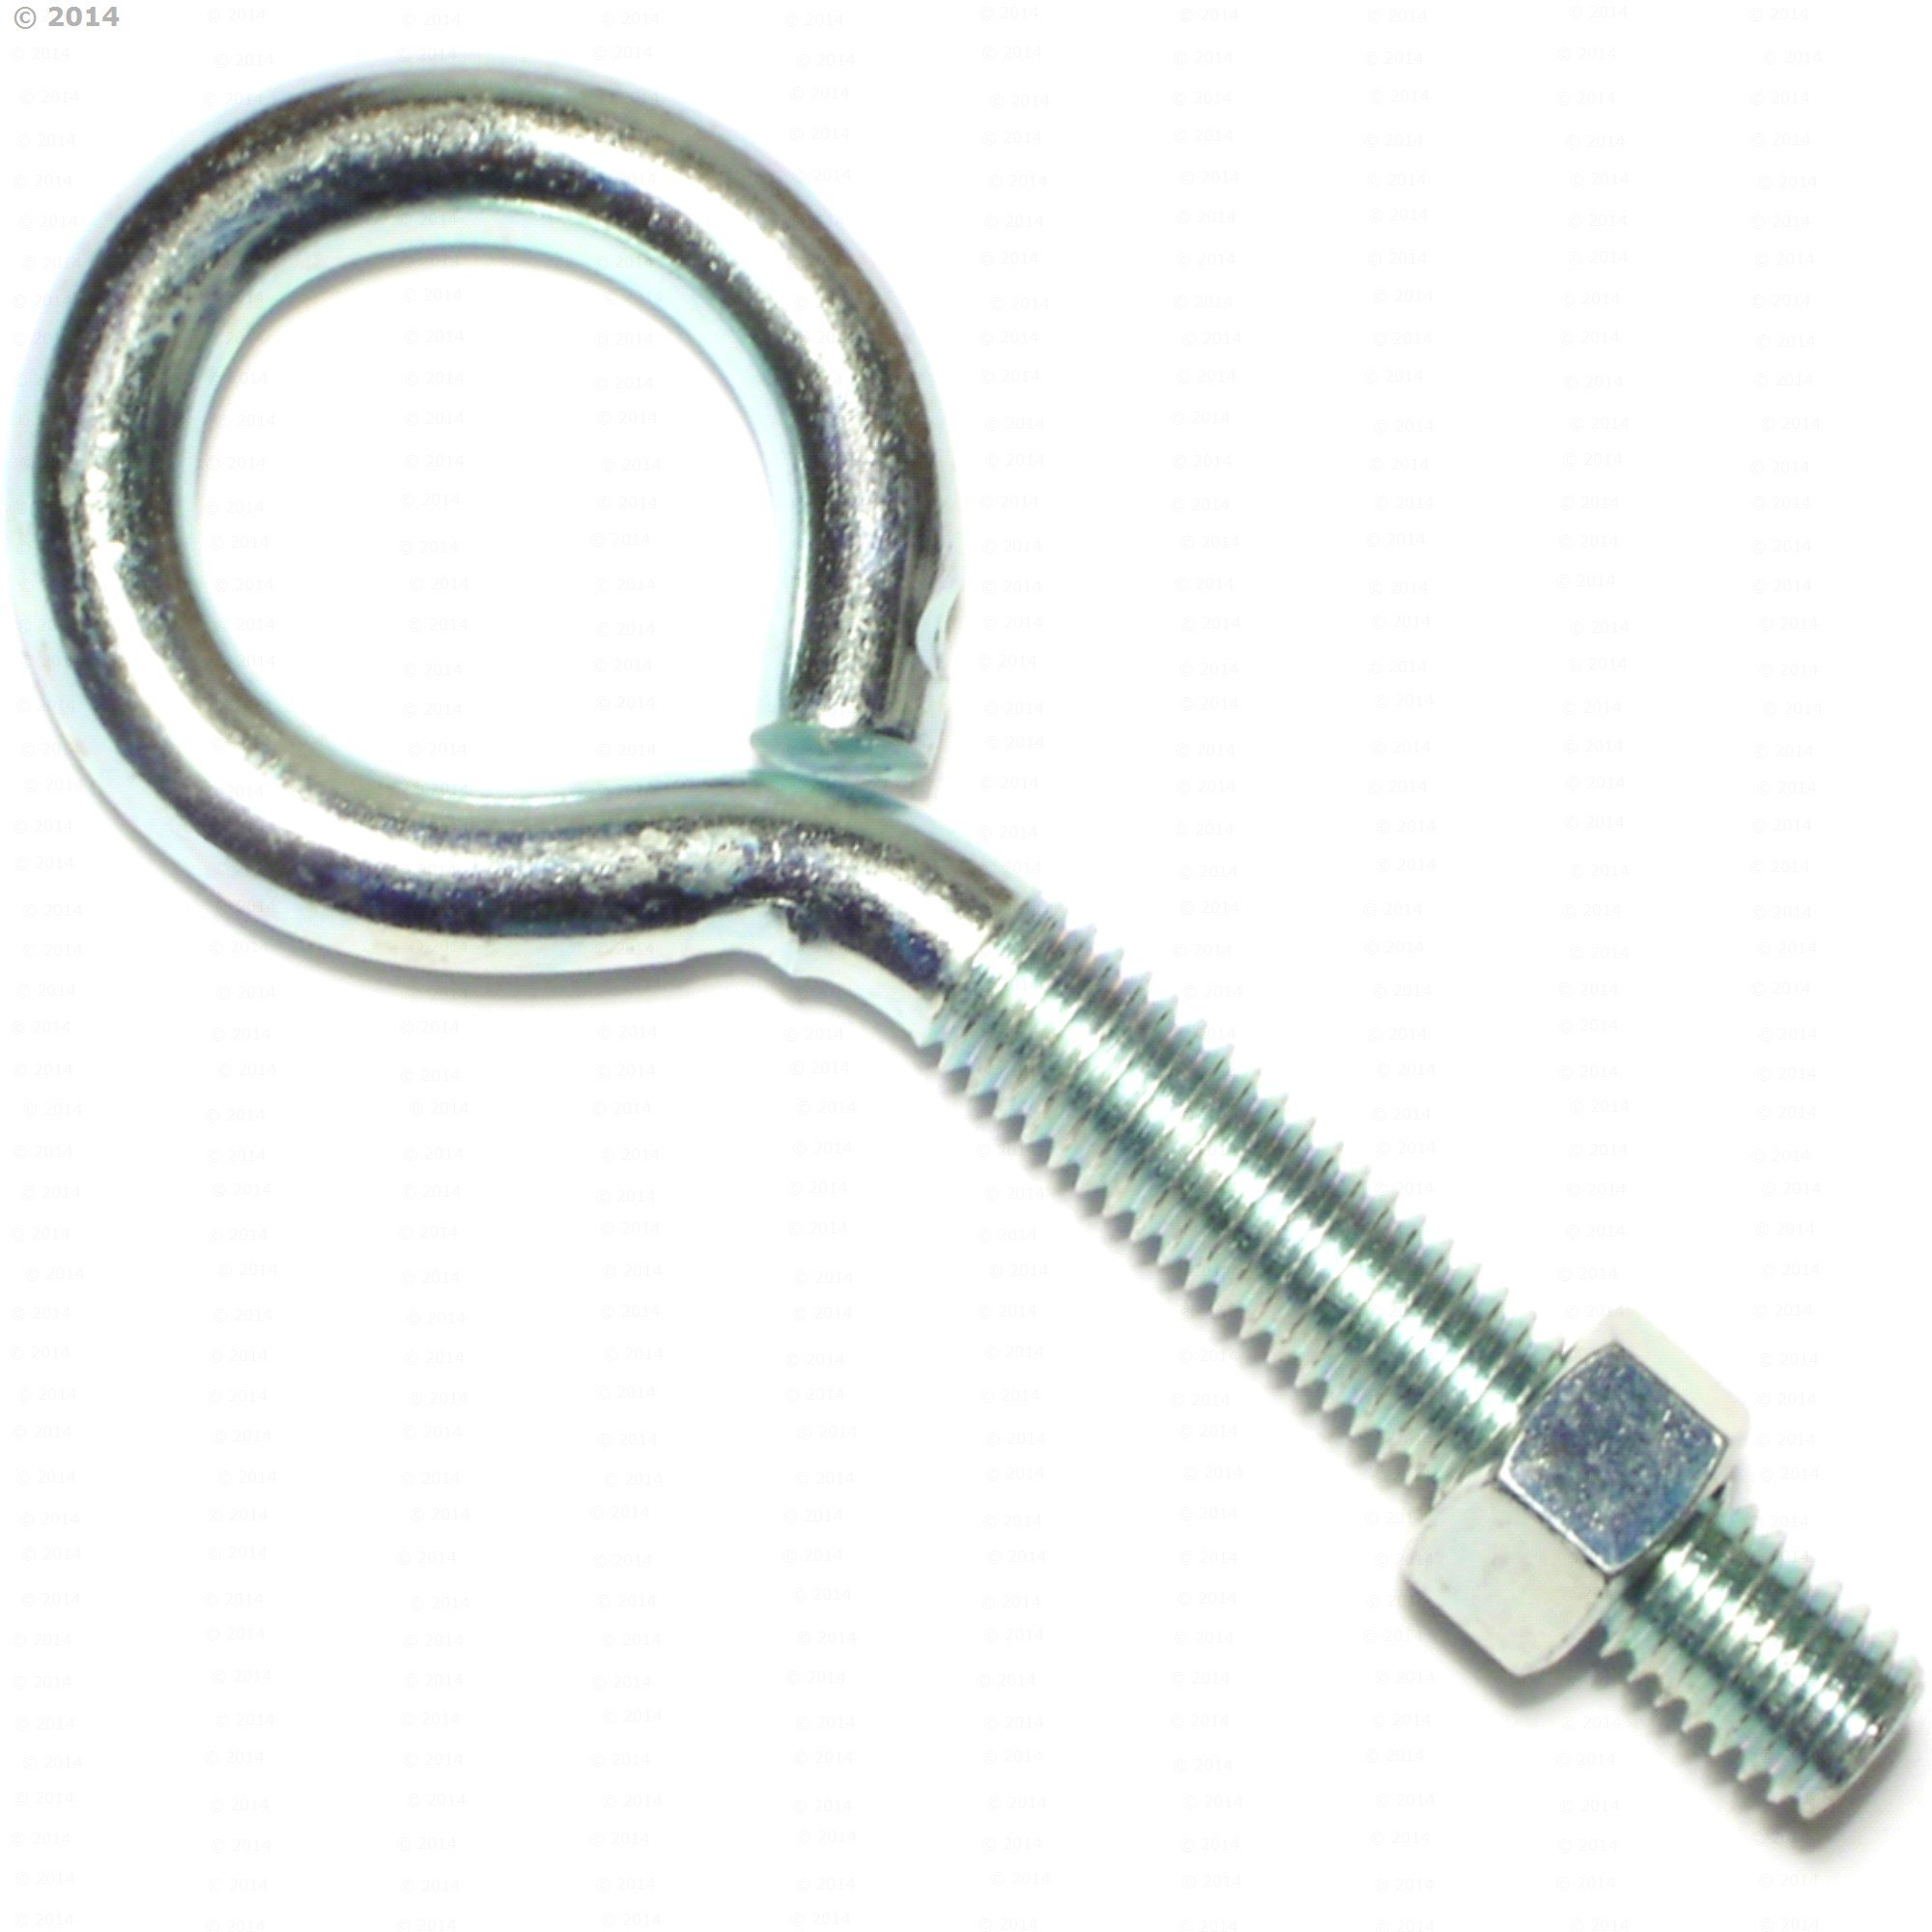 Hard-to-Find Fastener 014973239930 Eye Bolts with Nuts, 3/8-16 x 4, Piece-5